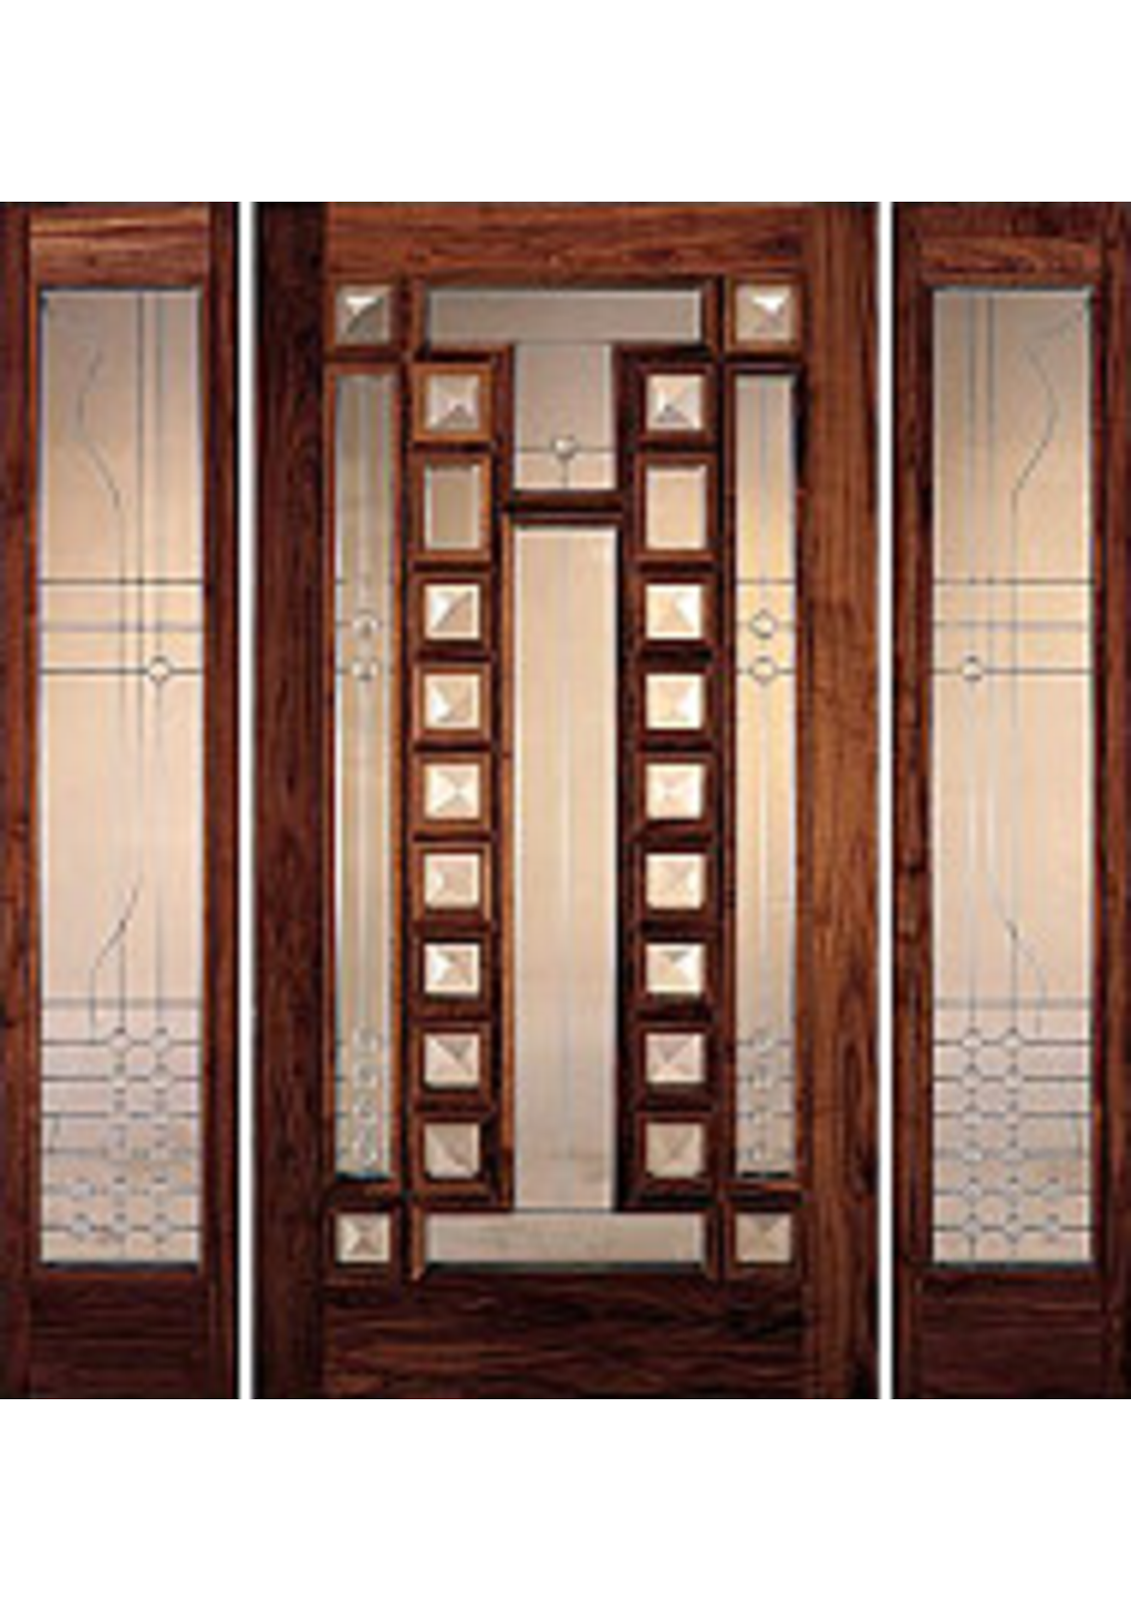 Foundation dezin decor doors design for Door design accessories